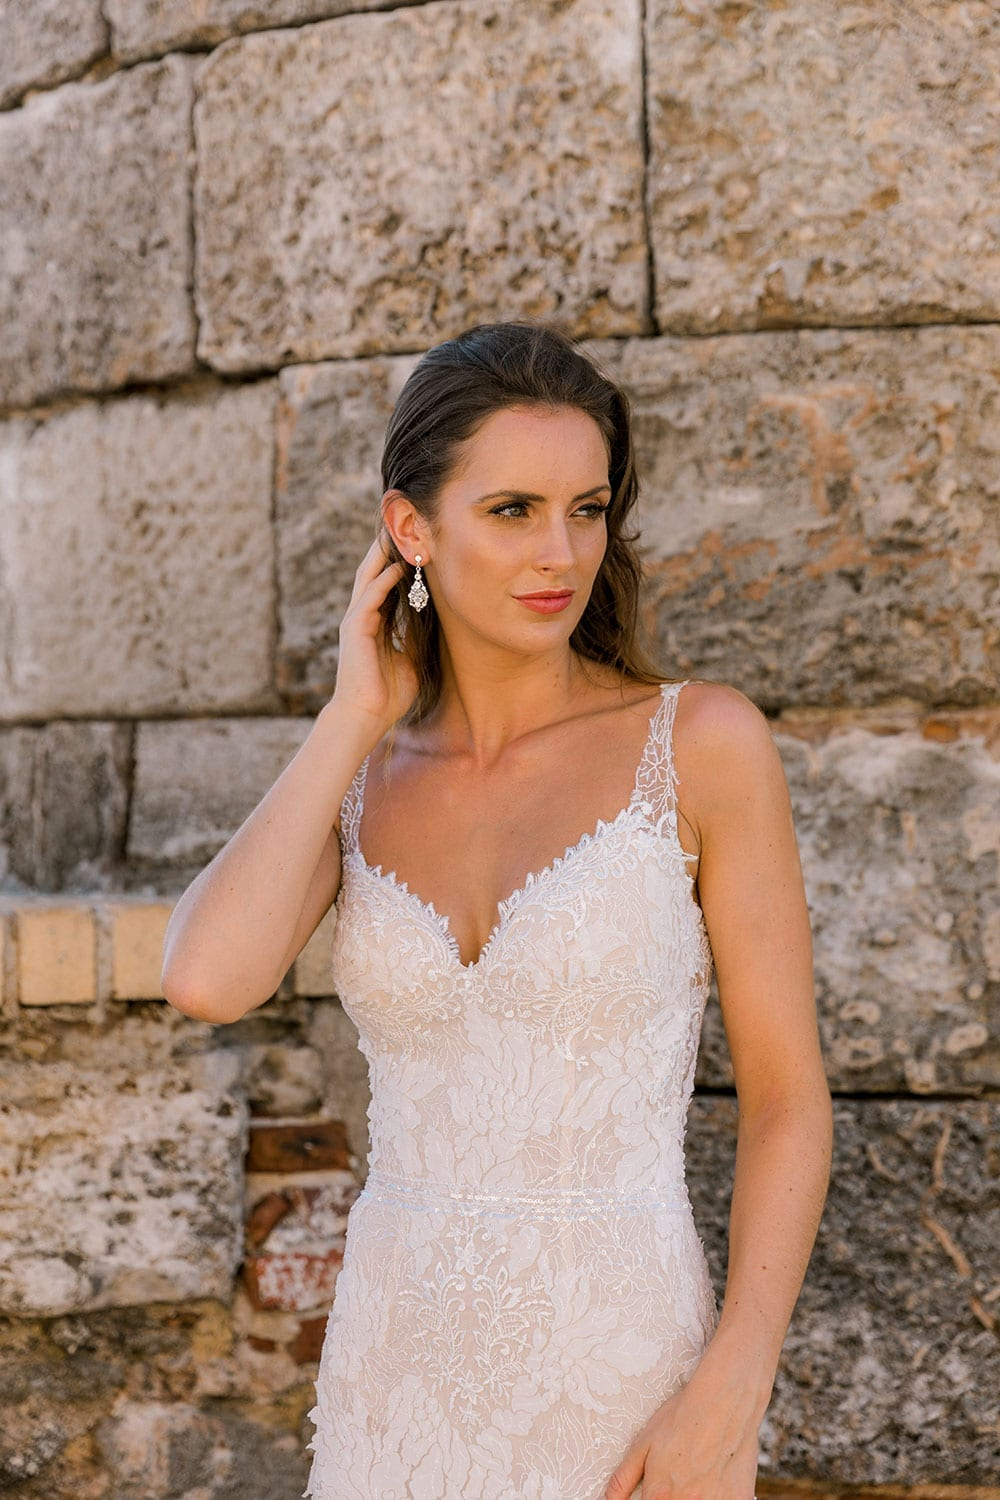 Model wearing Vinka Design Miriam Wedding Dress, a Beaded Lace Wedding Gown close up in front of old wall in Cuba